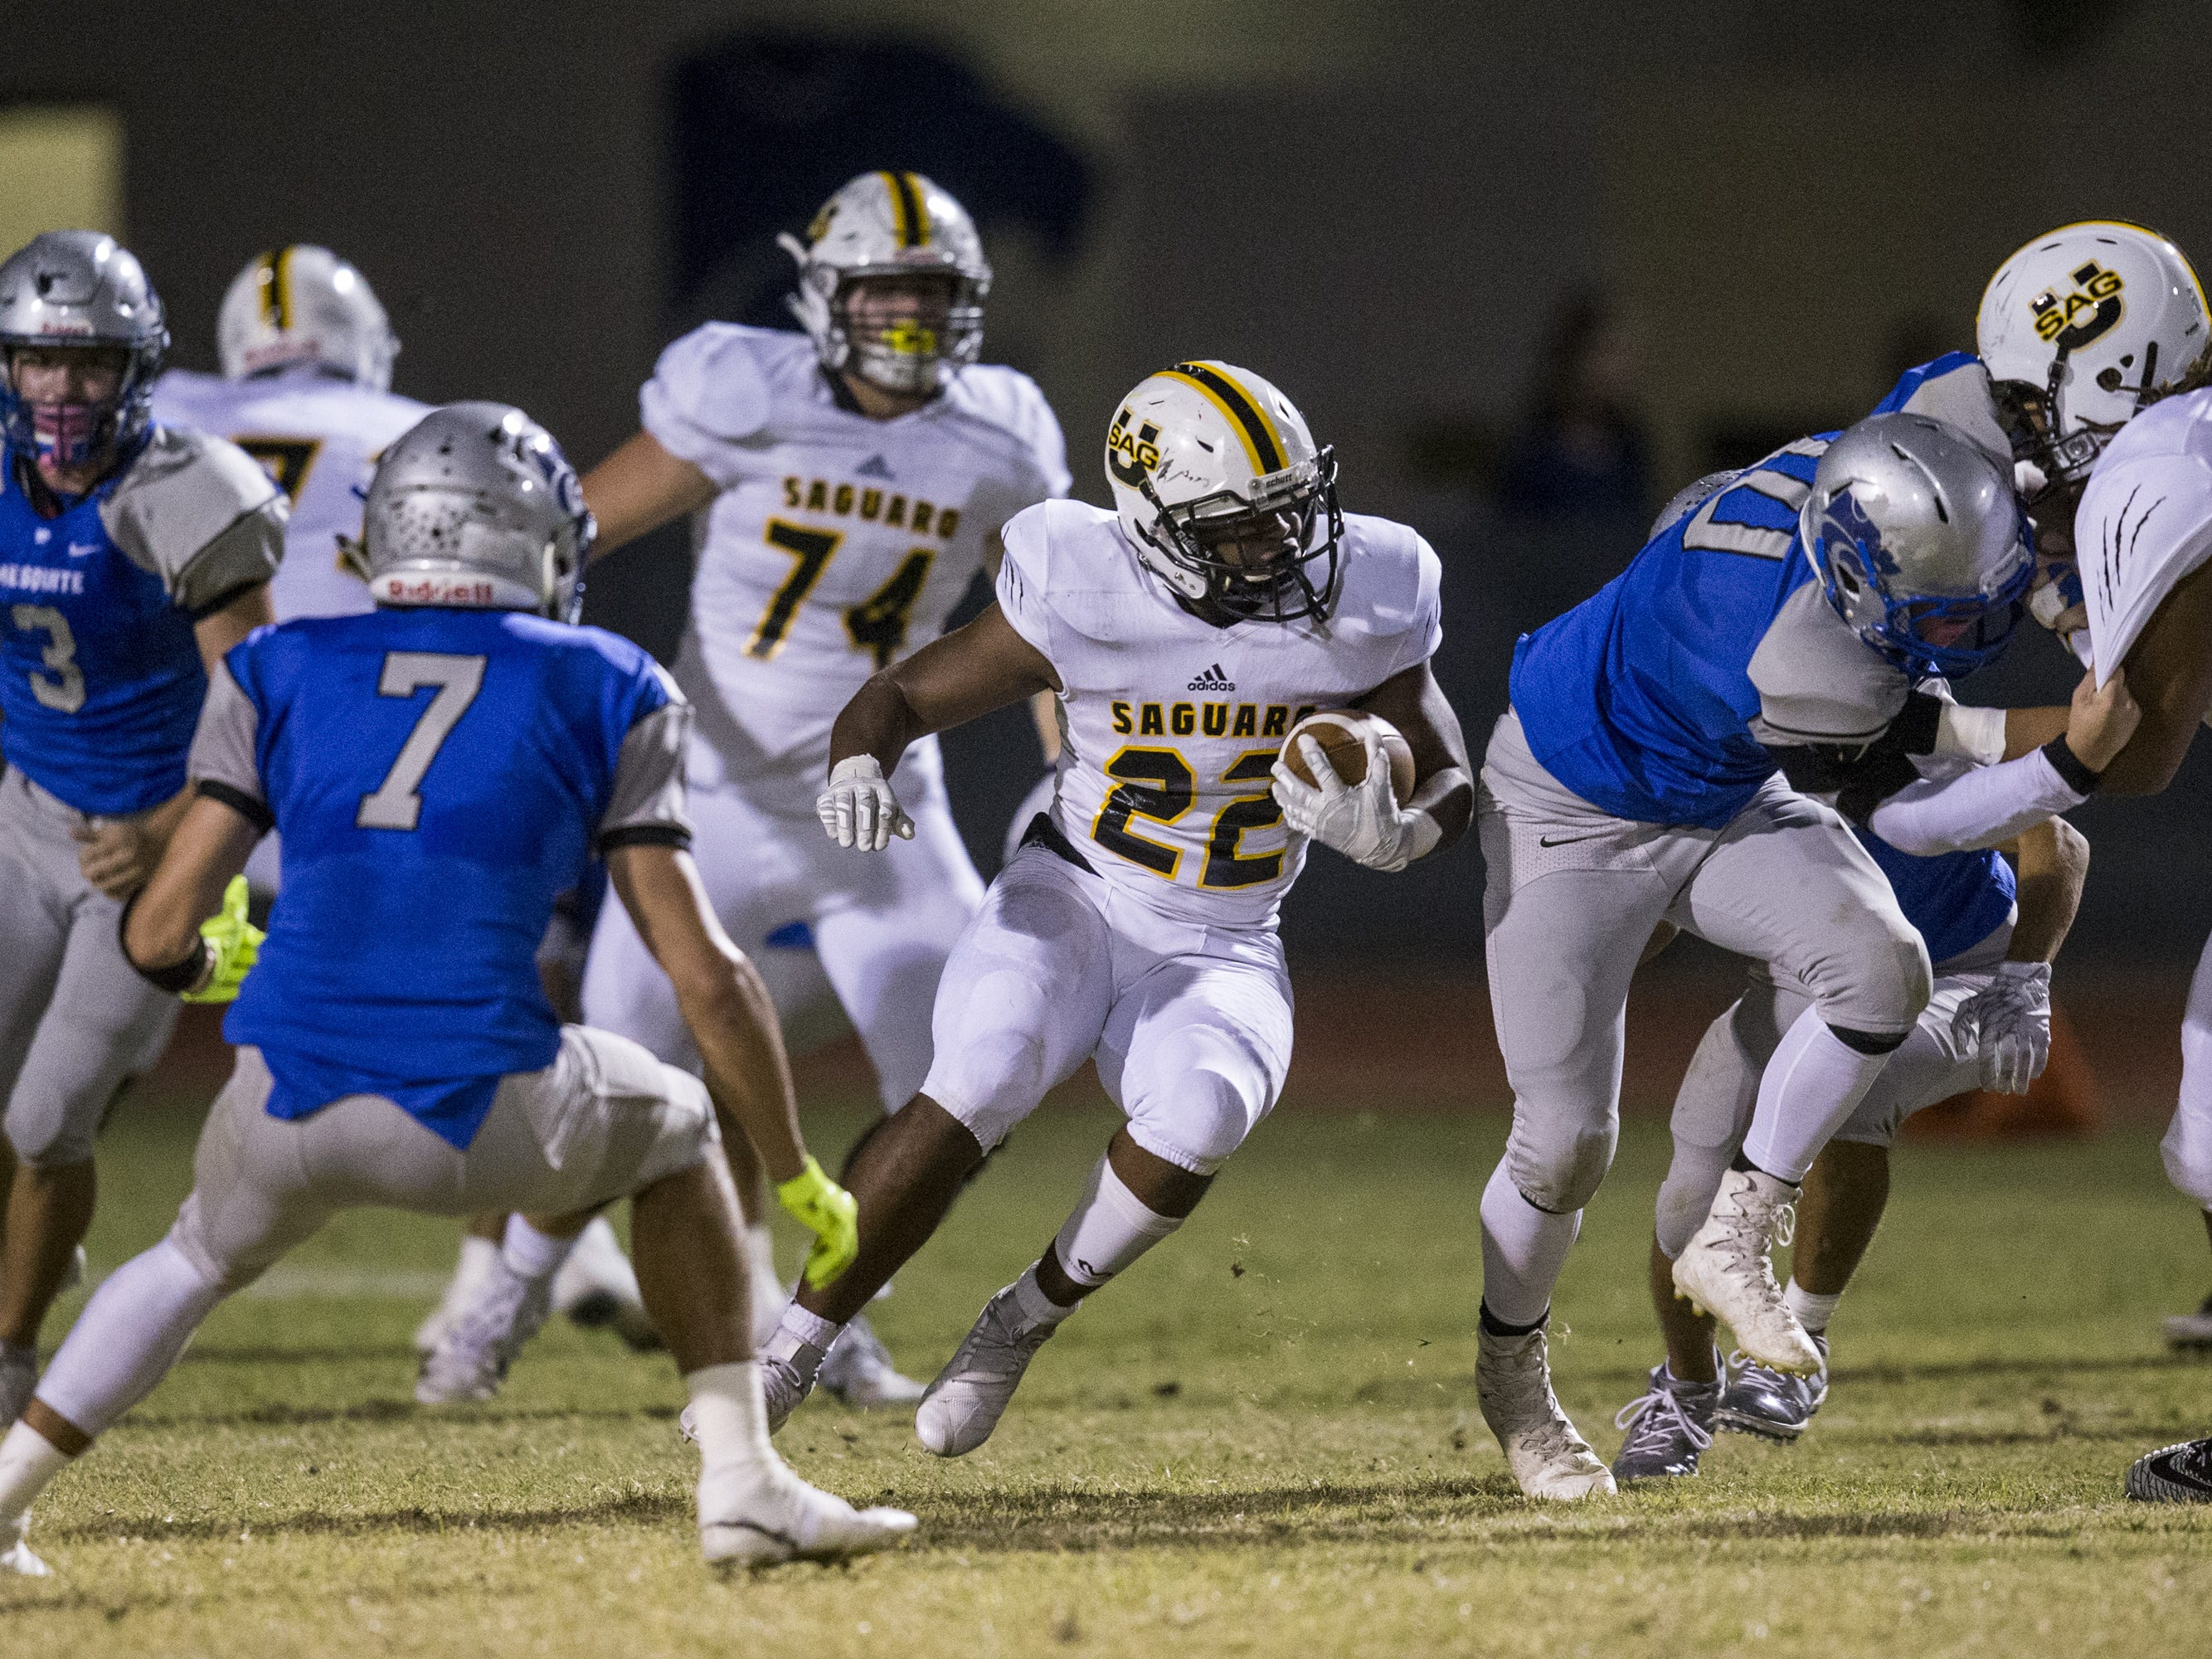 Saguaro's Israel Benjamin rushes against Mesquite in the first half on Friday, Oct. 26, 2018, at Mesquite High School in Gilbert, Ariz.  #azhsb